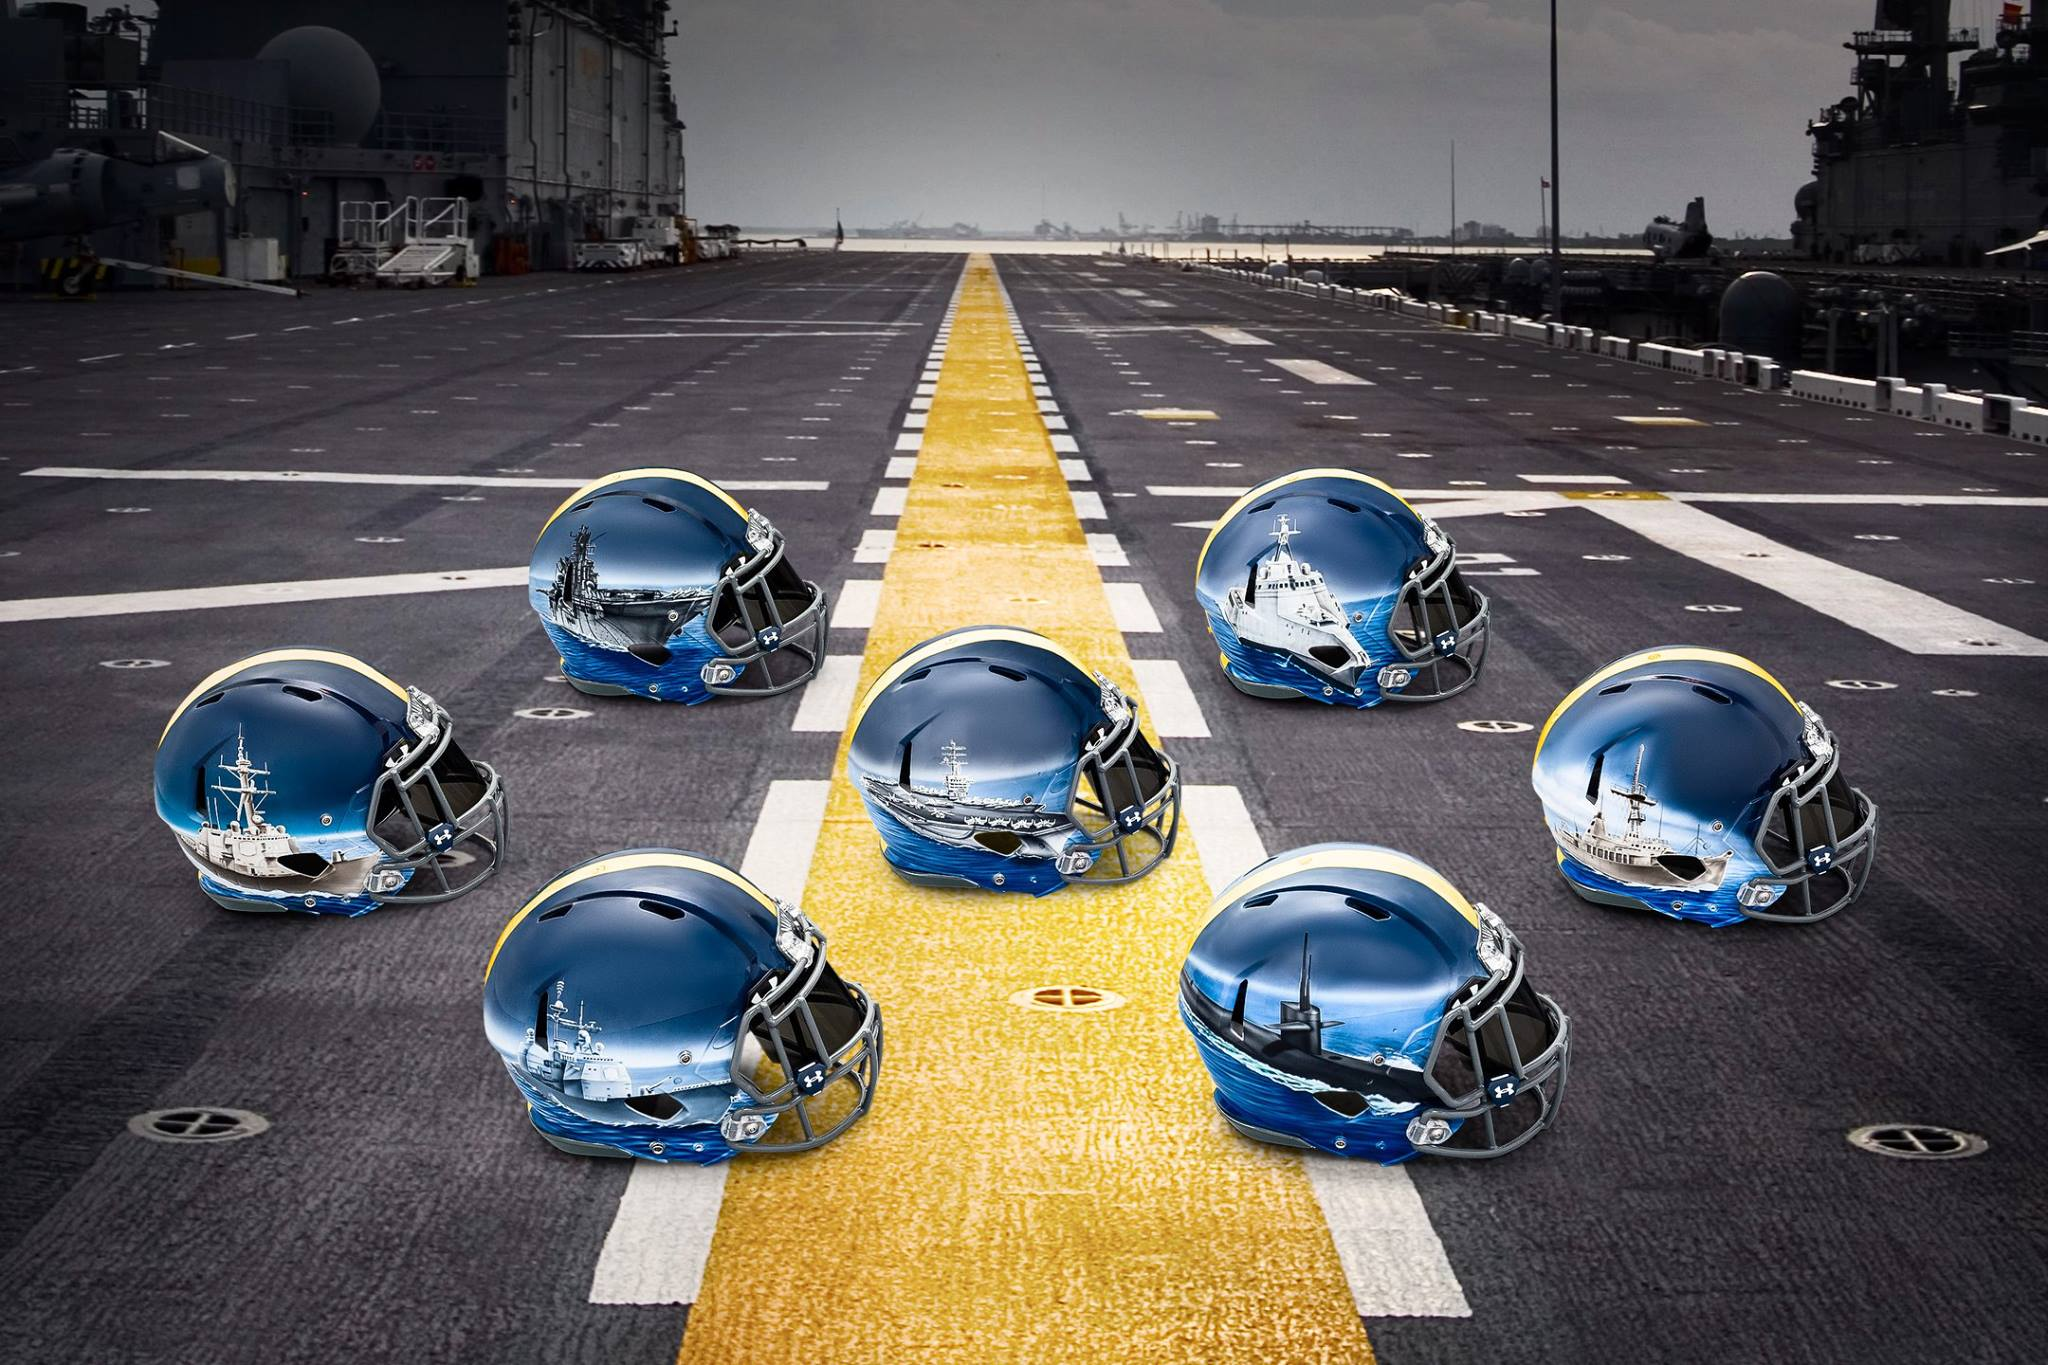 (PHOTOS) Navy Unveils Incredible Hand-Painted Helmets For Rivalry Game Vs. Army Featured